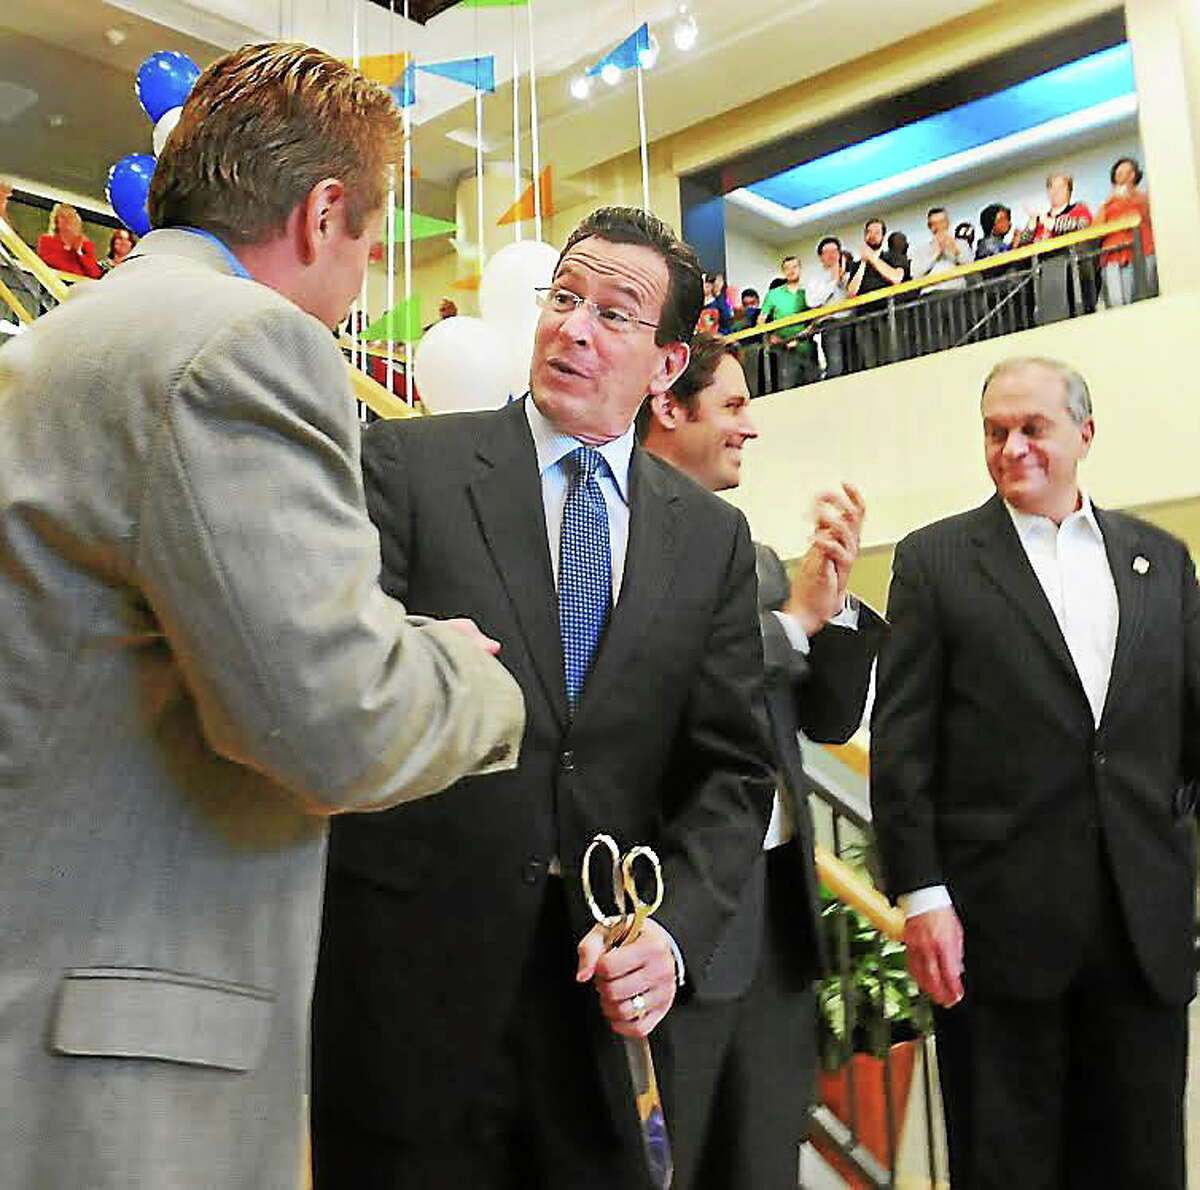 New Haven Register file photo Left to right: Mark Volchek, chairman and CFO of Higher One Holdings; Gov. Dannel P. Malloy; Miles Lasater, COO of Higher One; and former New Haven Mayor John DeStefano Jr.